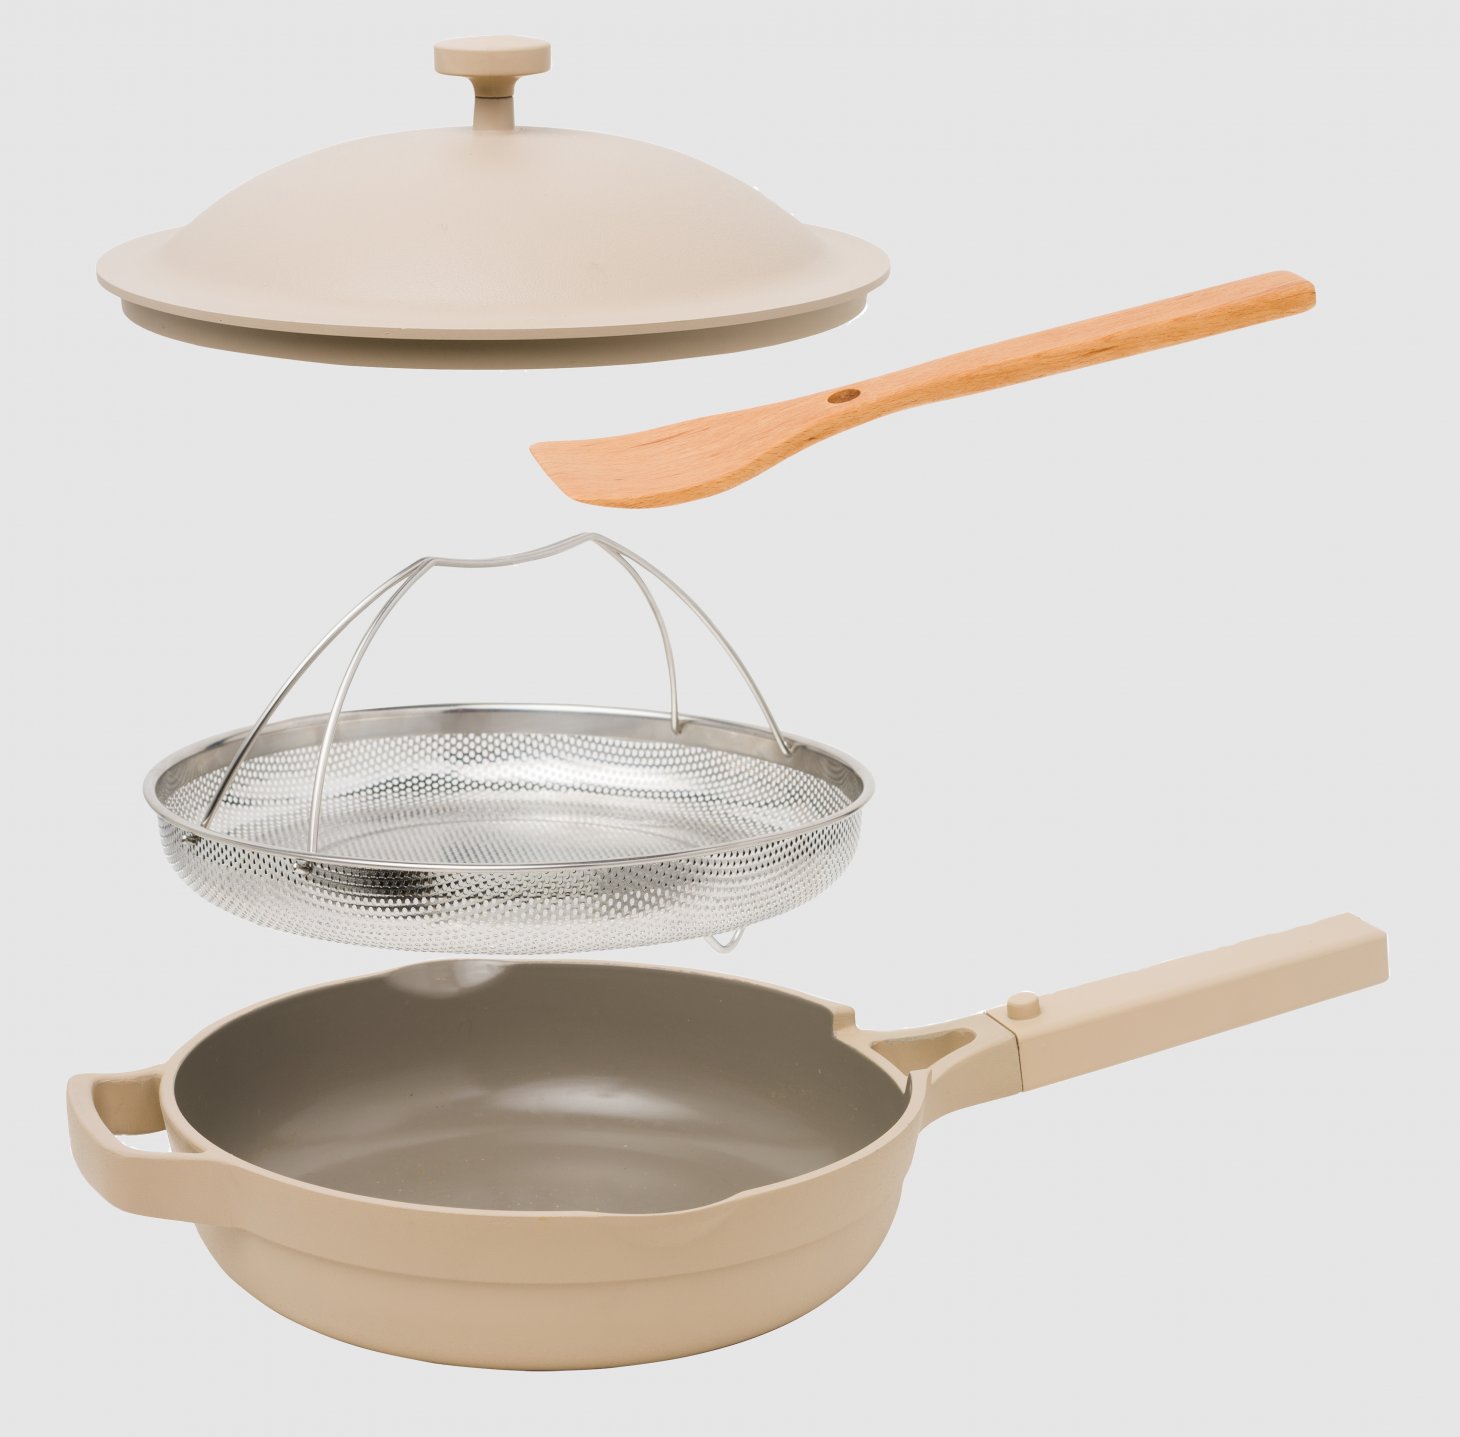 The Always Pan made by Our Place in light gray with steamer and spoon